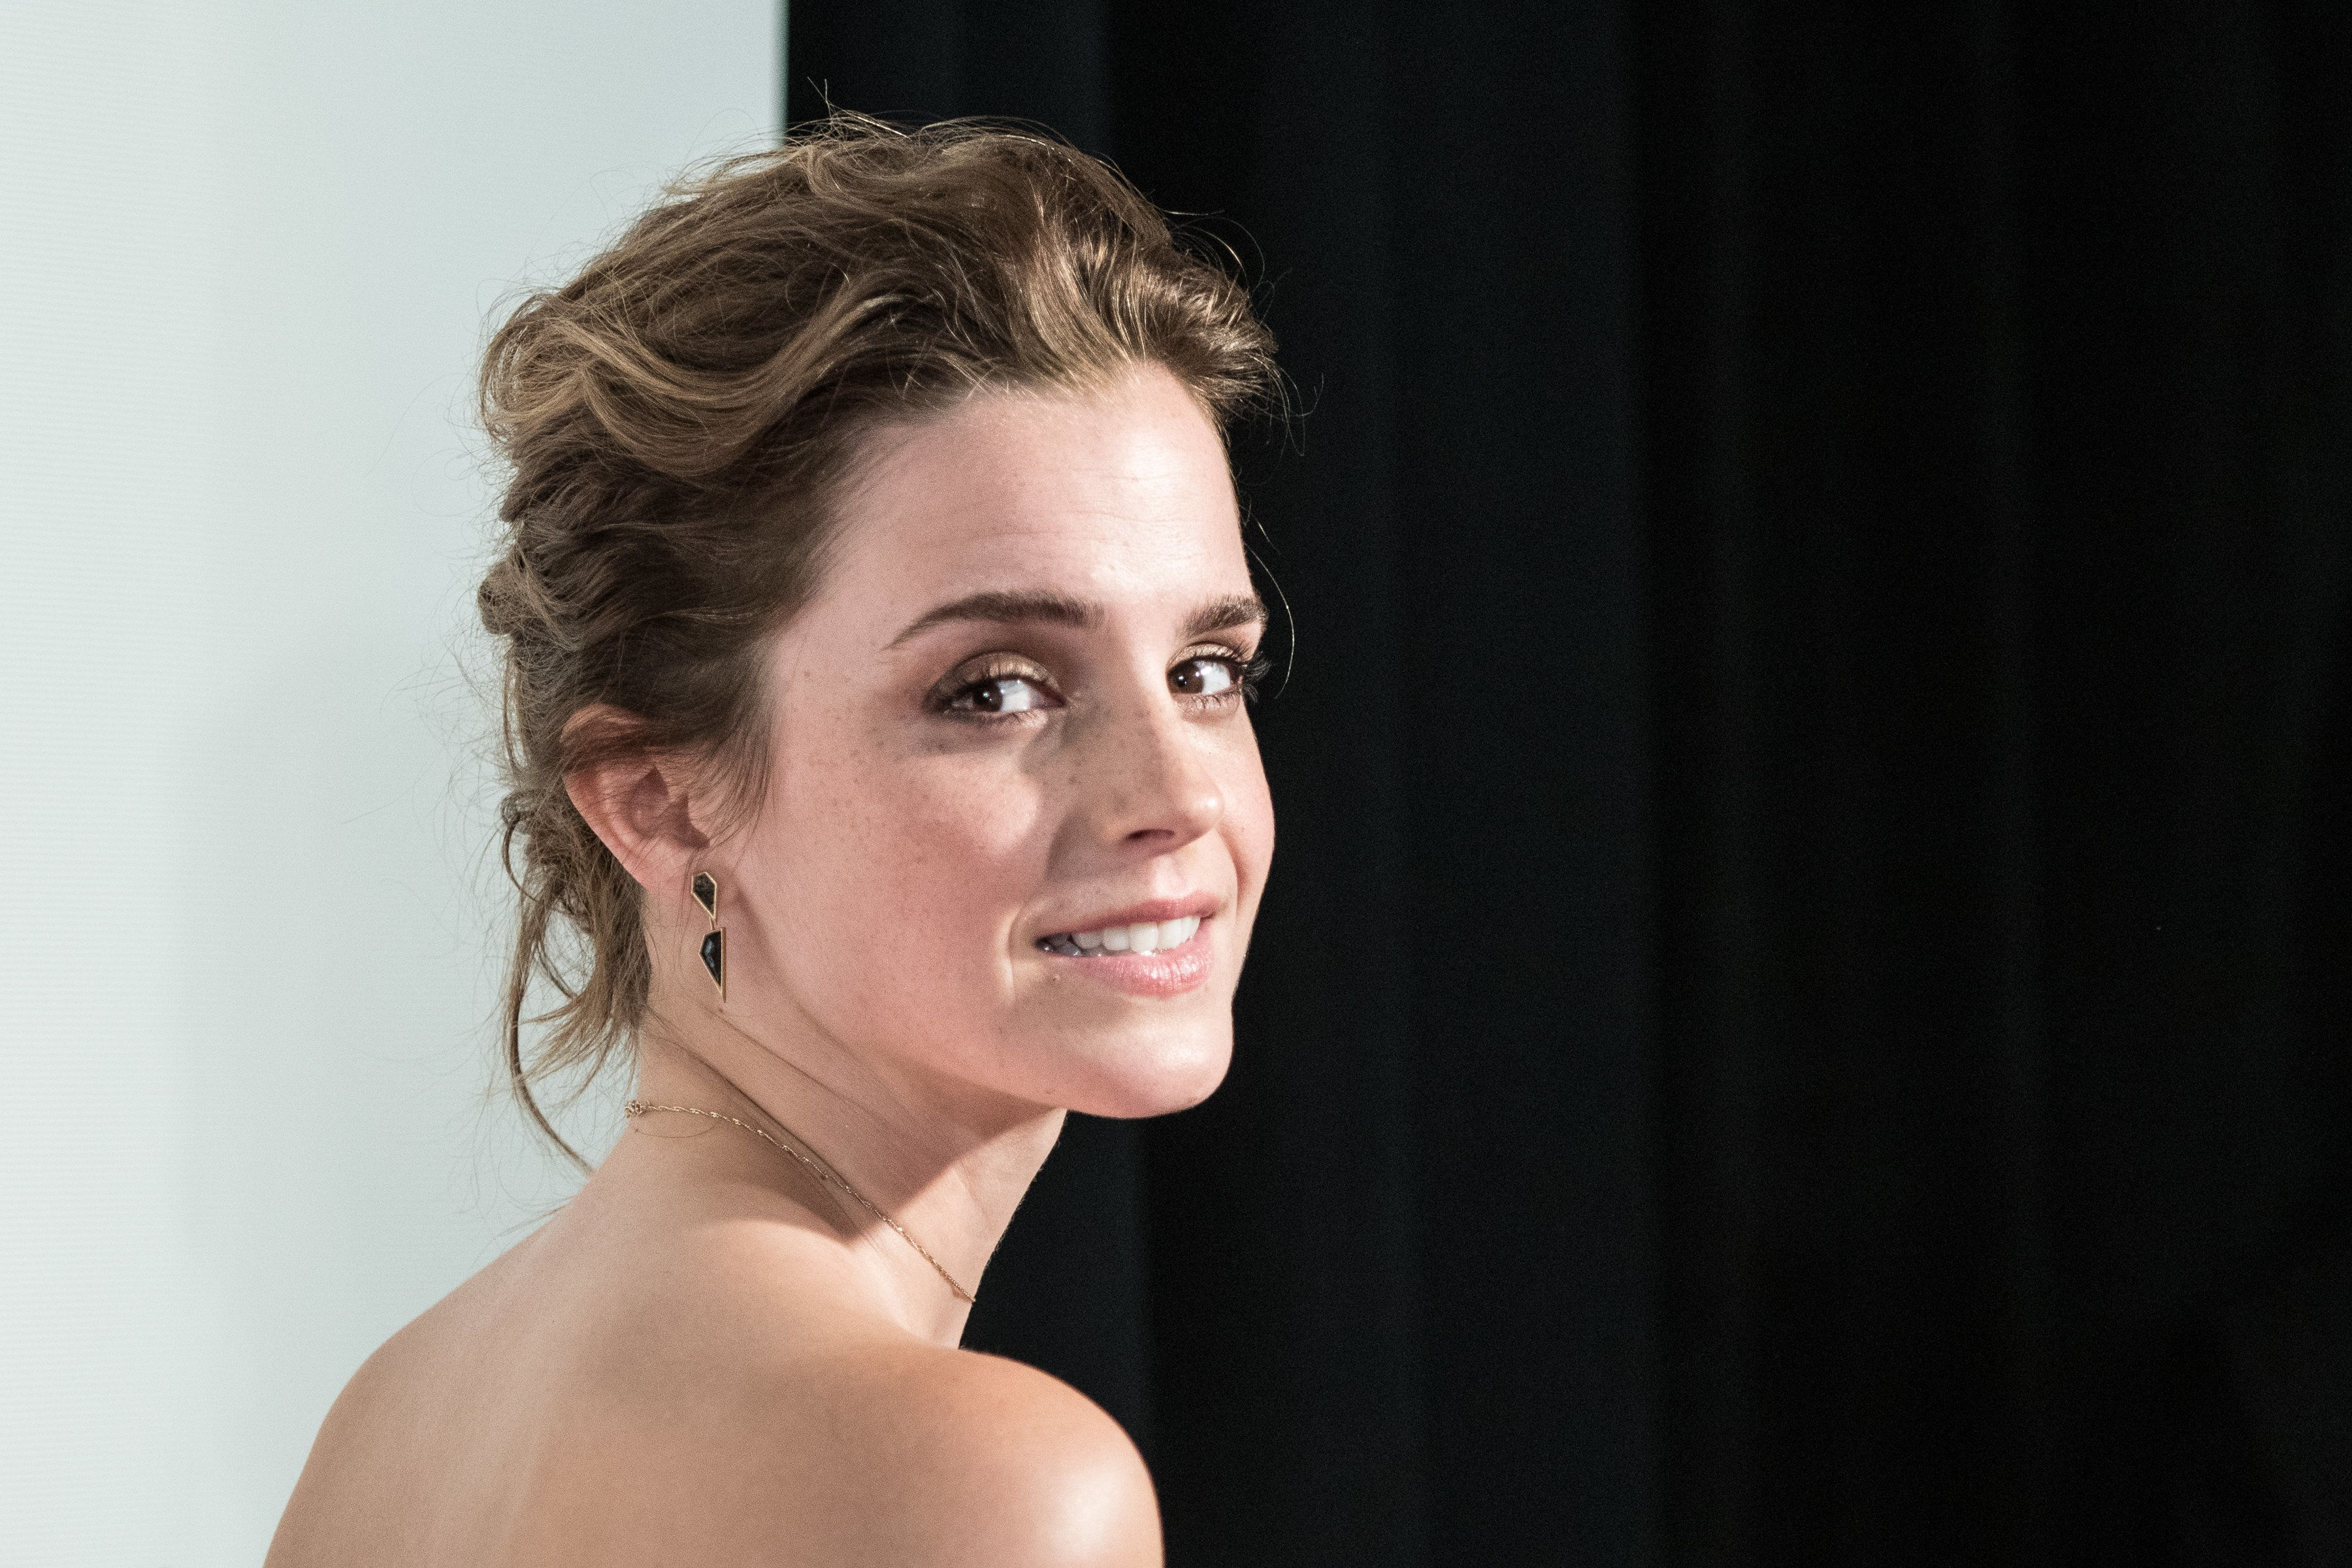 Emma Watson's Latest Instagram Posts Prove Her Ongoing Dedication To Sustainable